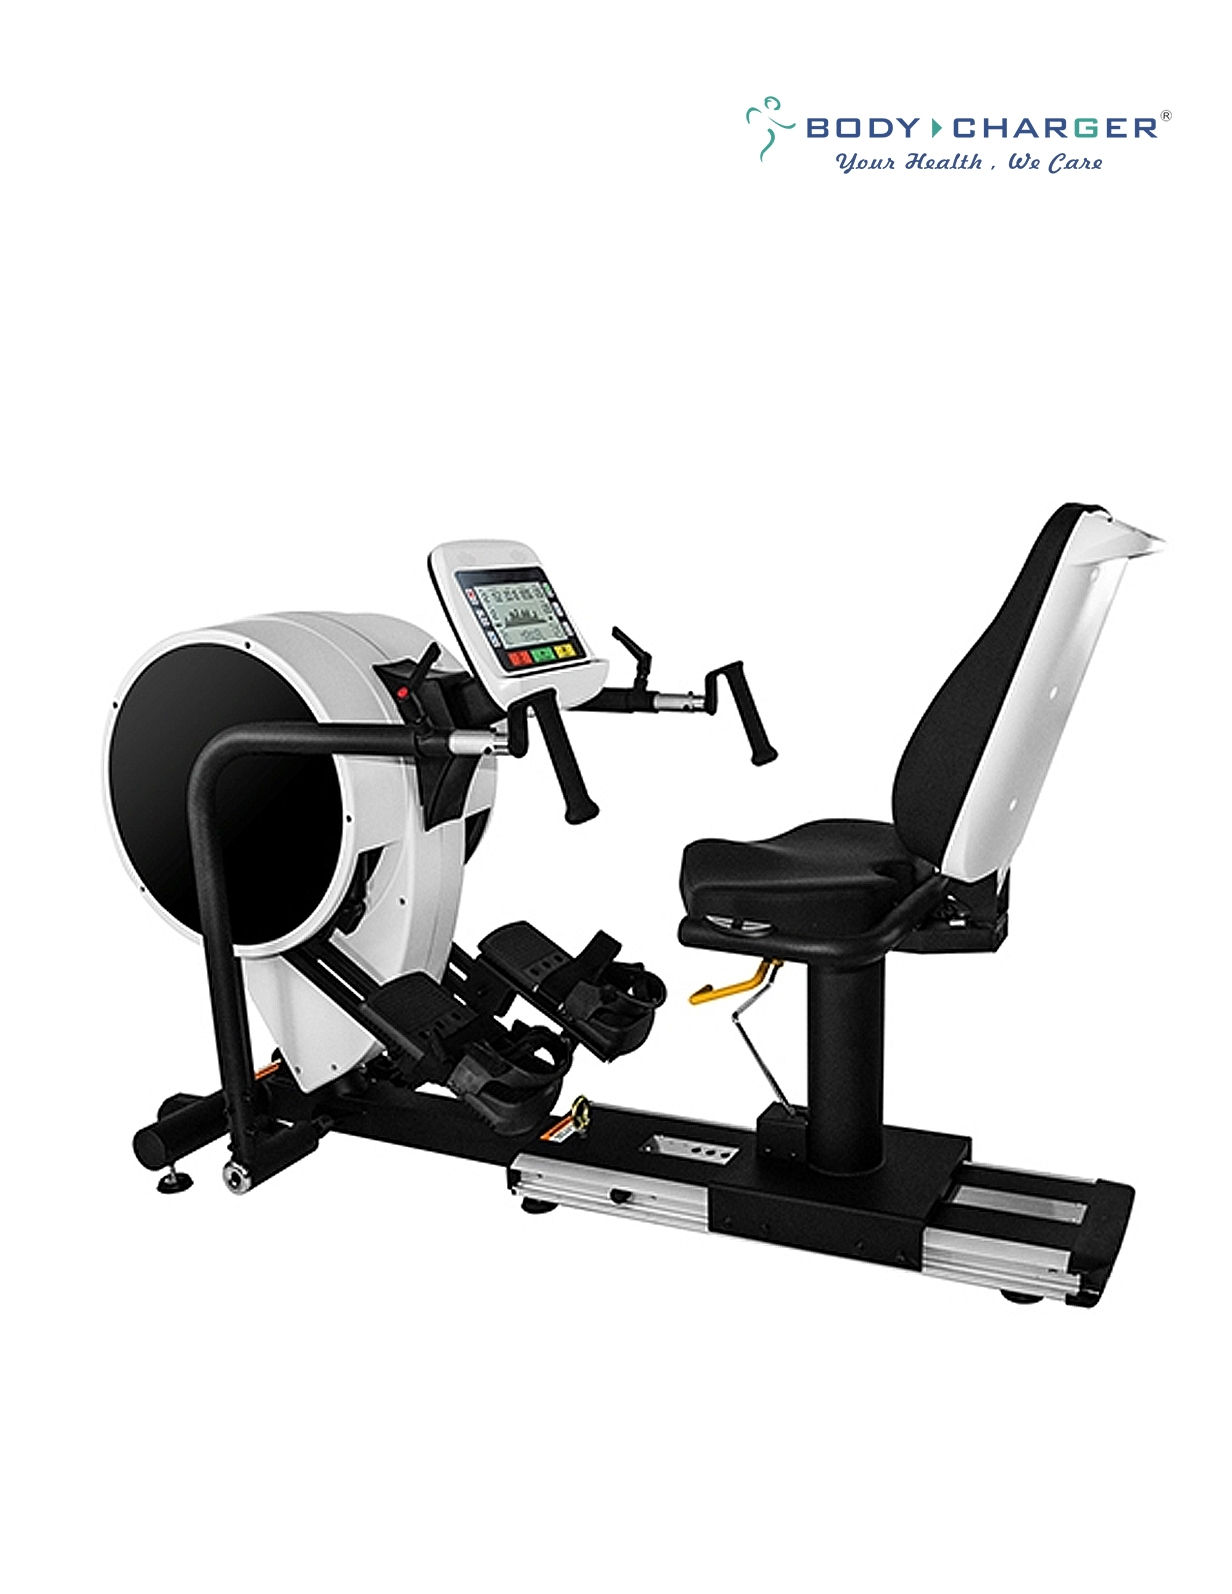 GB7008 EMS-9′ DUAL ACTION RECUMBENT STEPPER PRO